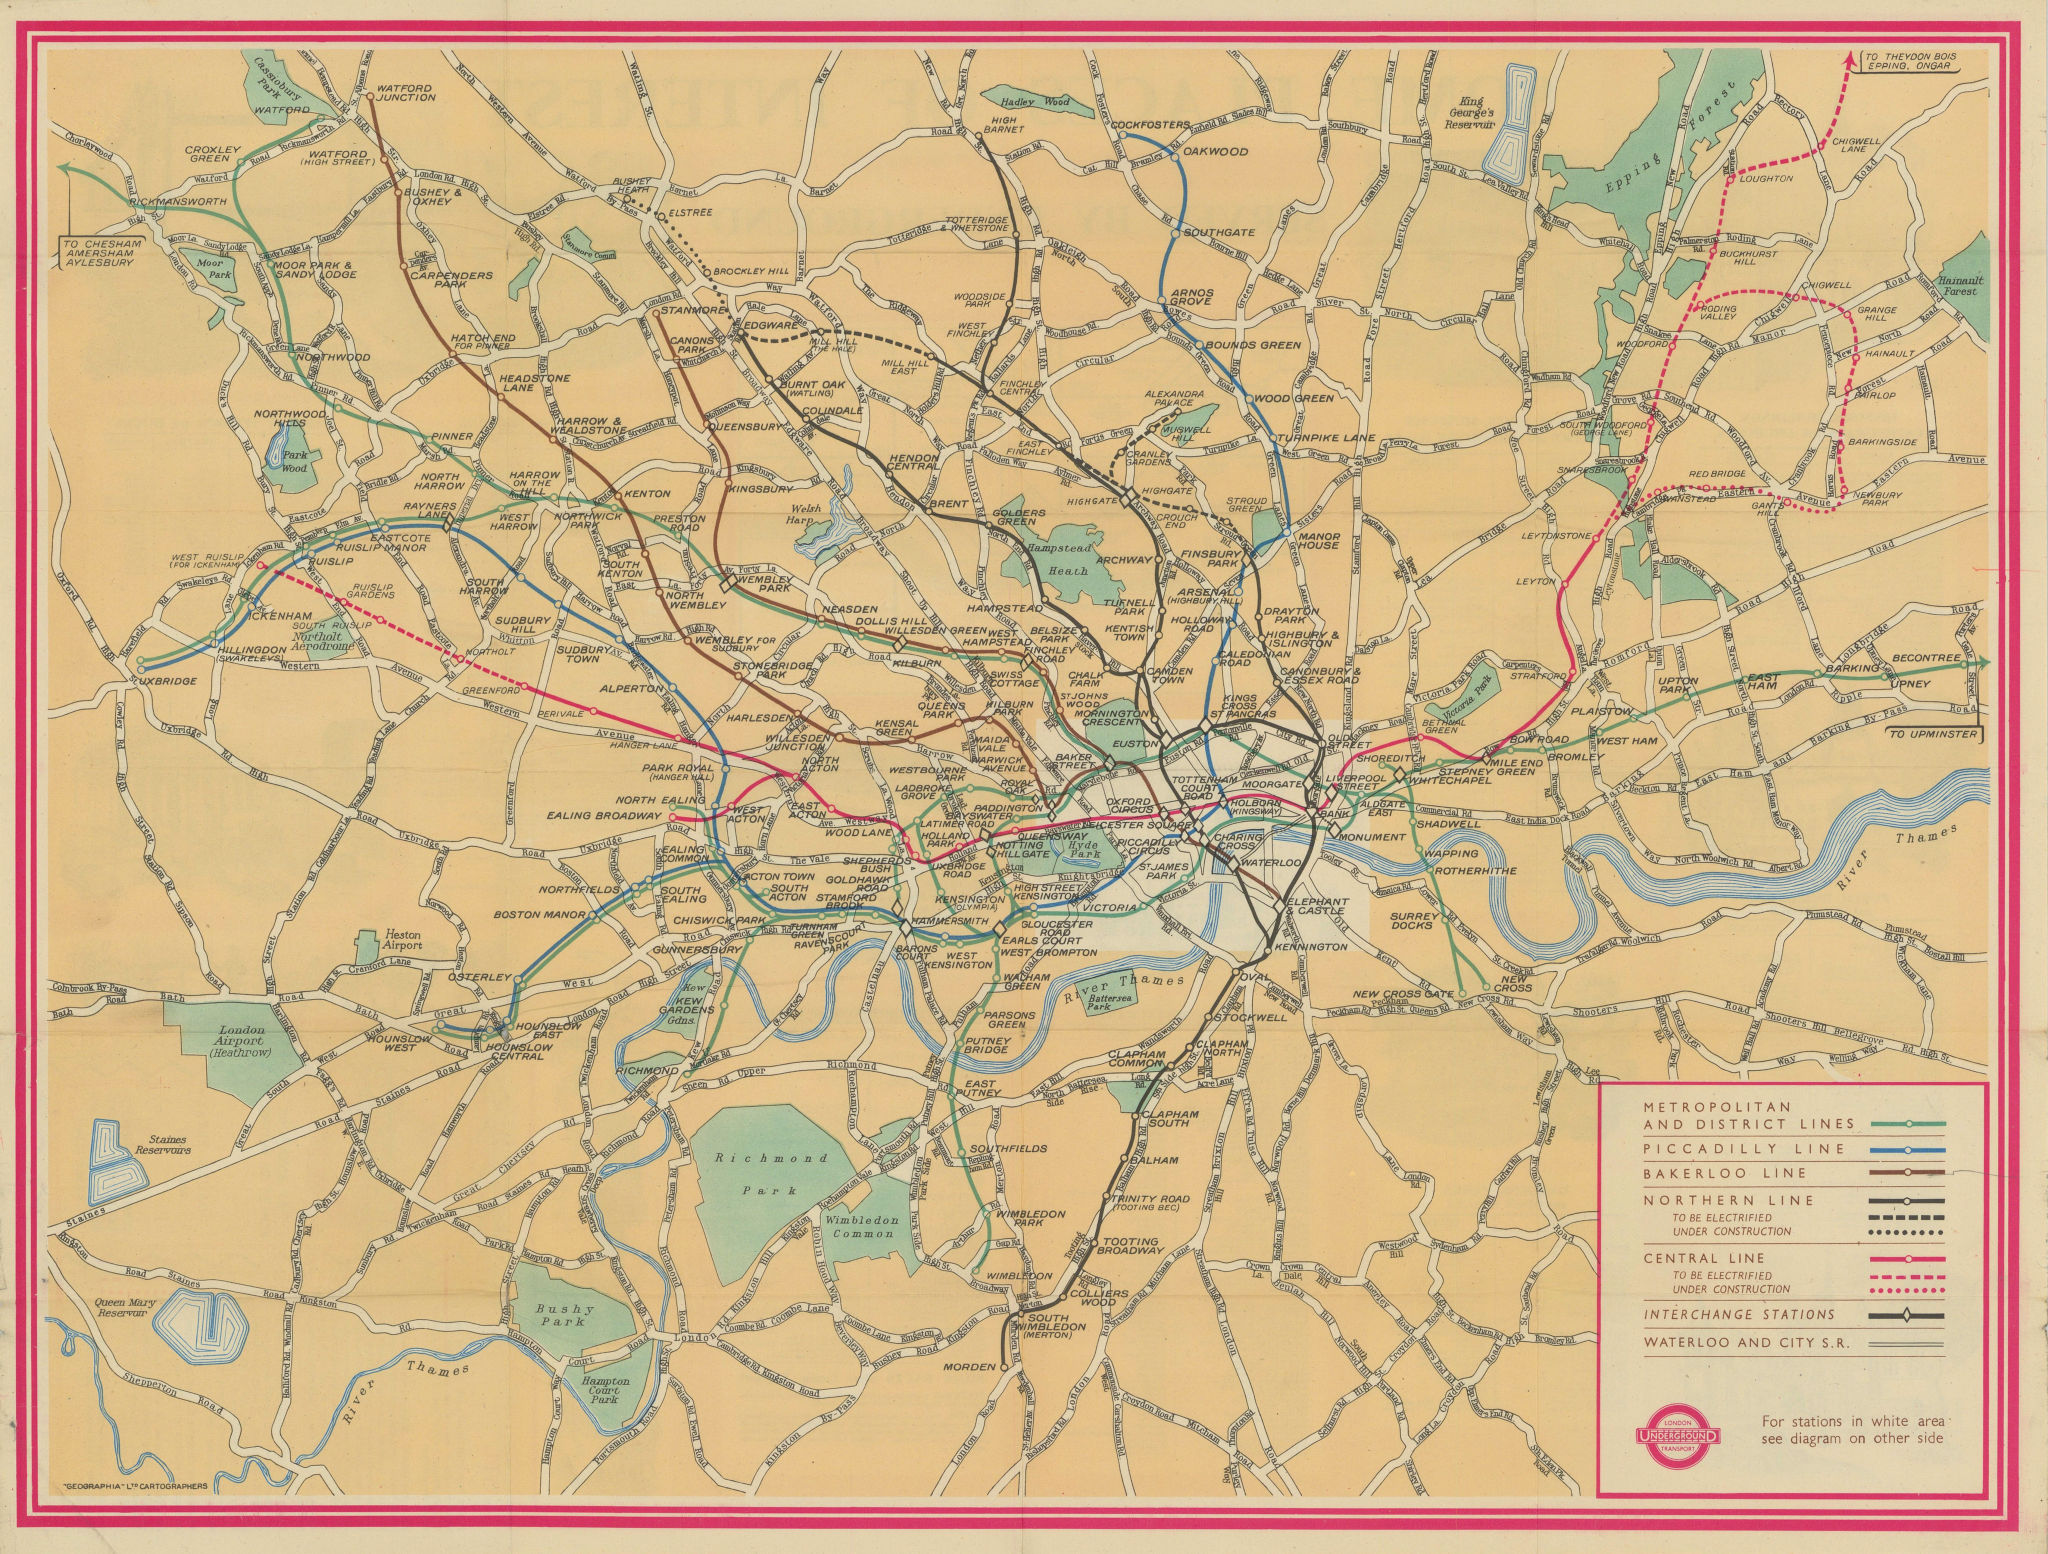 London Transport Underground map and some places of interest. #1 1947 old